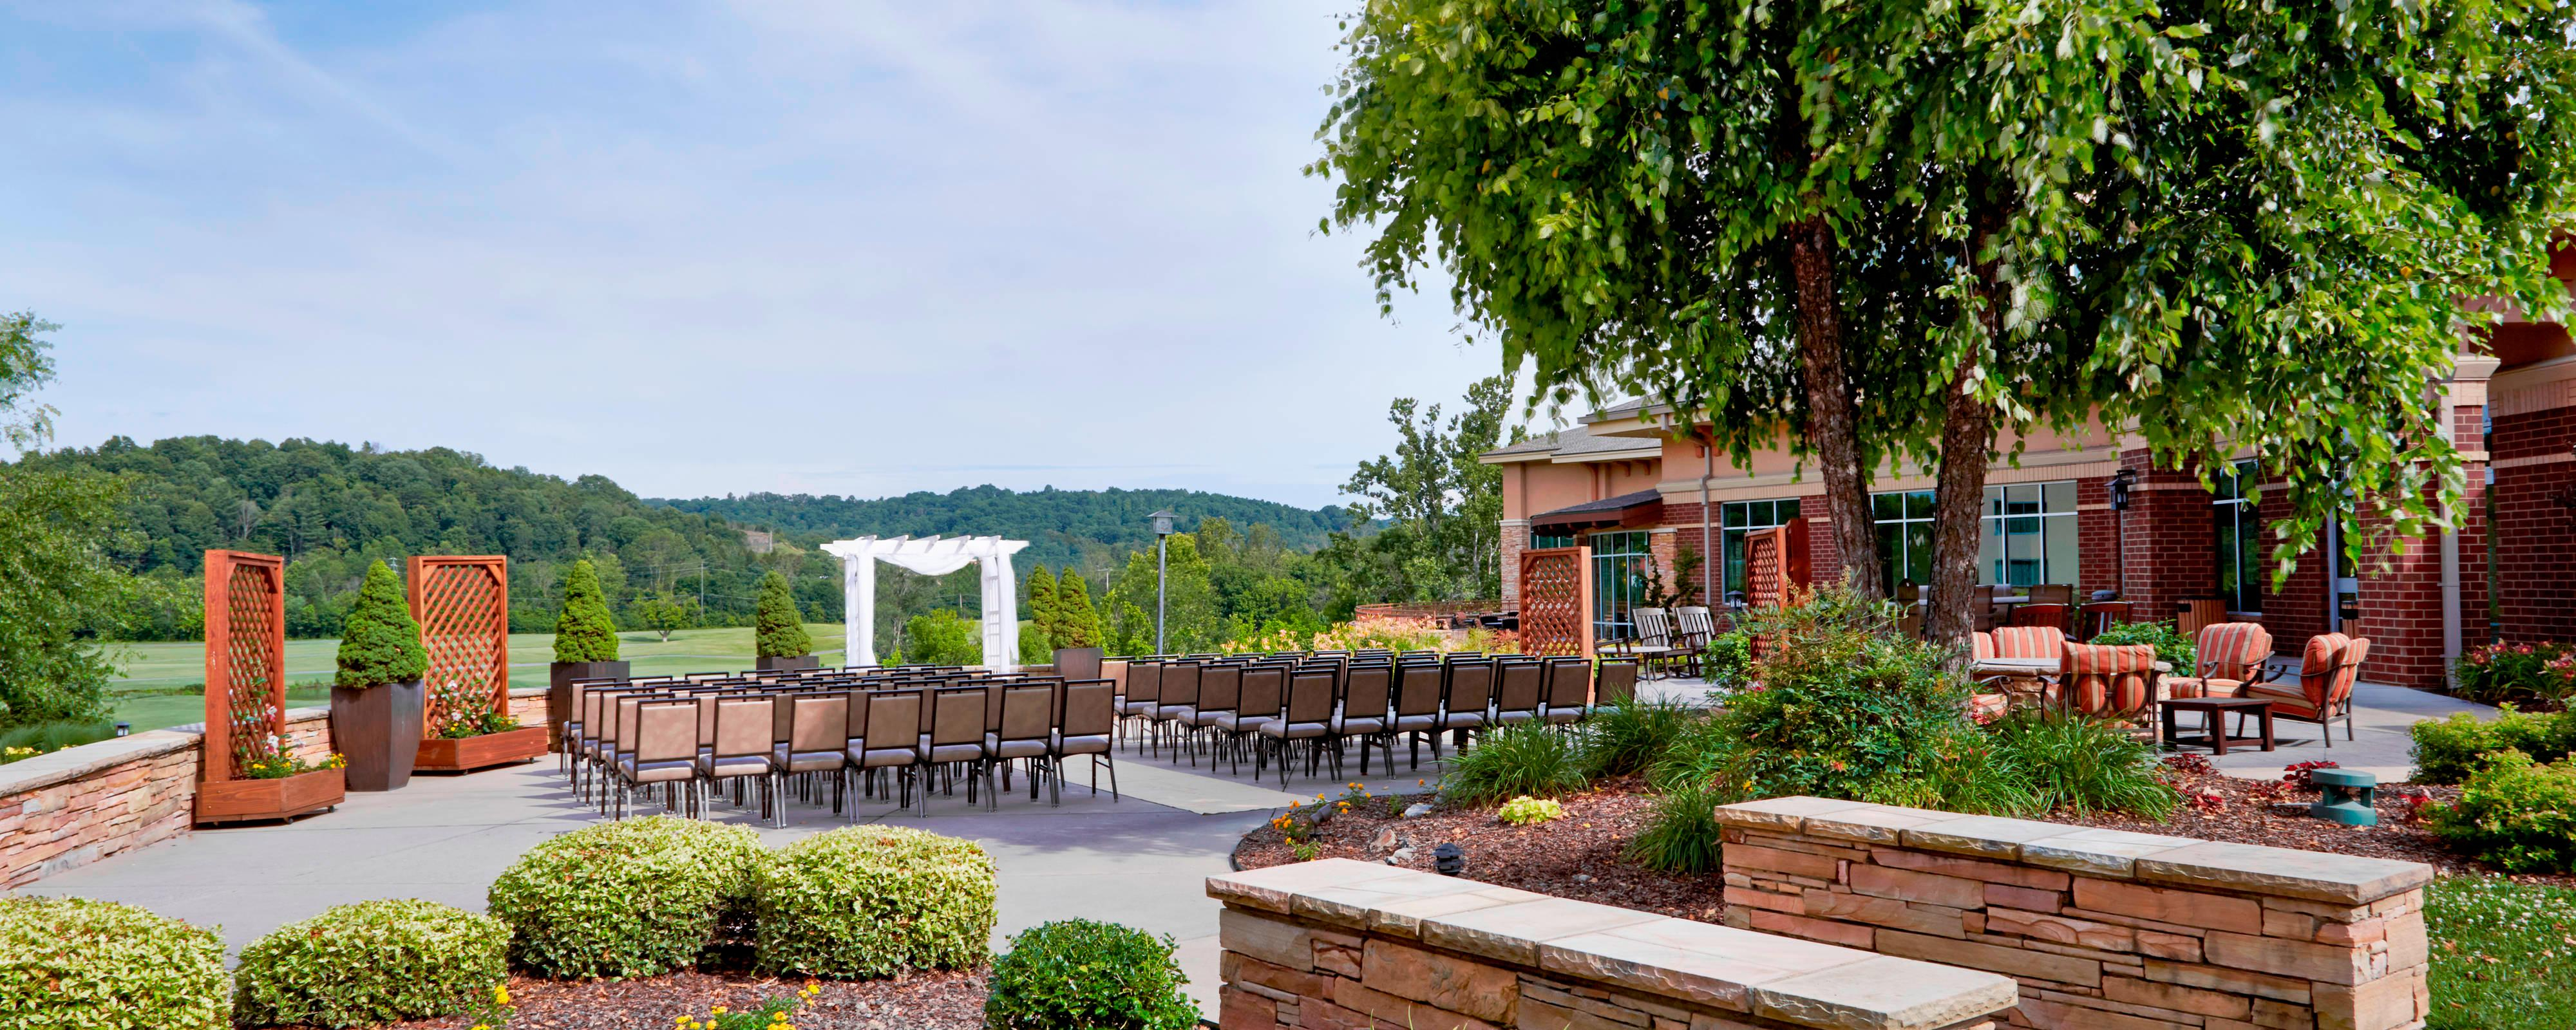 Wedding Venue Kingsport Tn – Reception Venues | Meadowview In Meadowview Convention Center Schedule Events In 2021